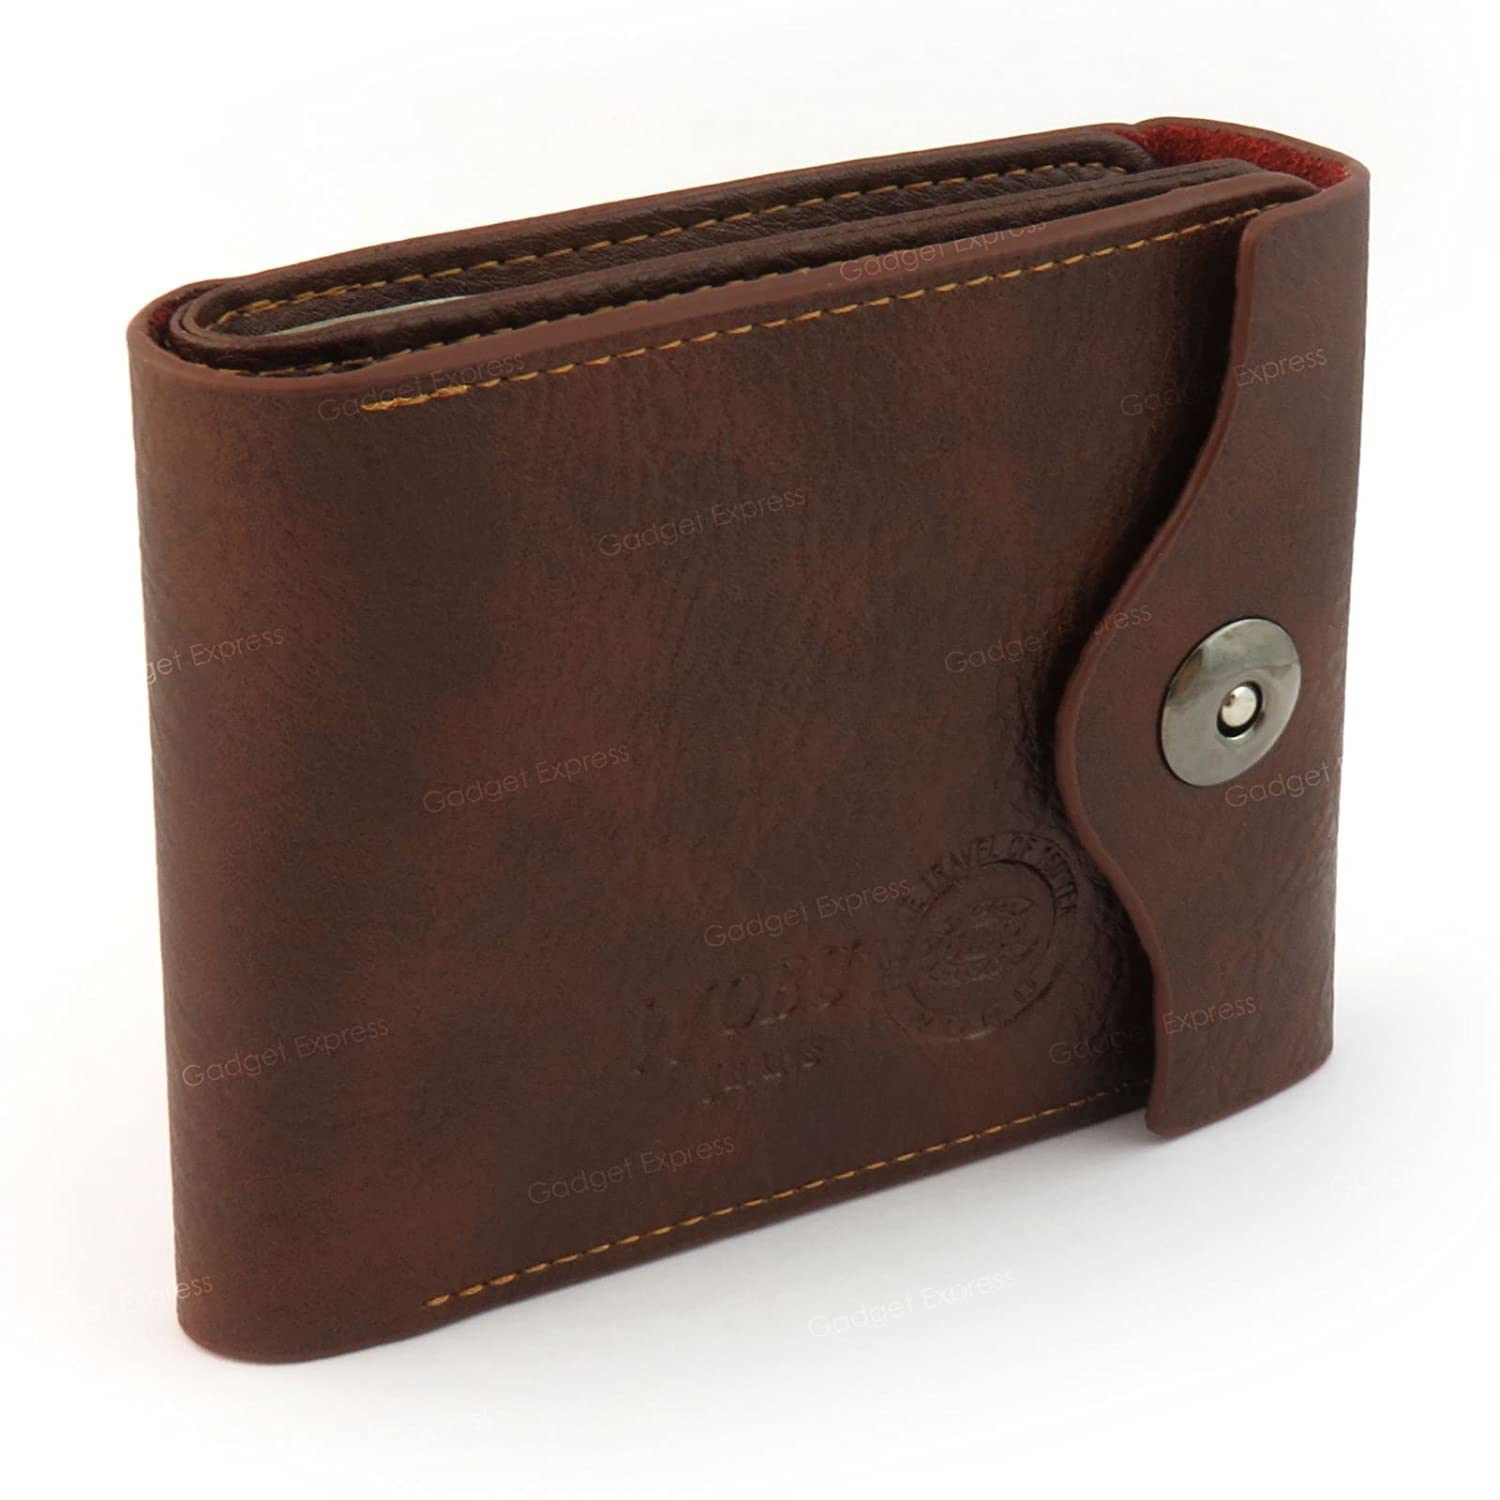 Wobu Mens Brown Luxury High Quality Soft Leather Trifold Wallet Multiple Credit Card Holder Slots Coin Pouch Purse ID Window